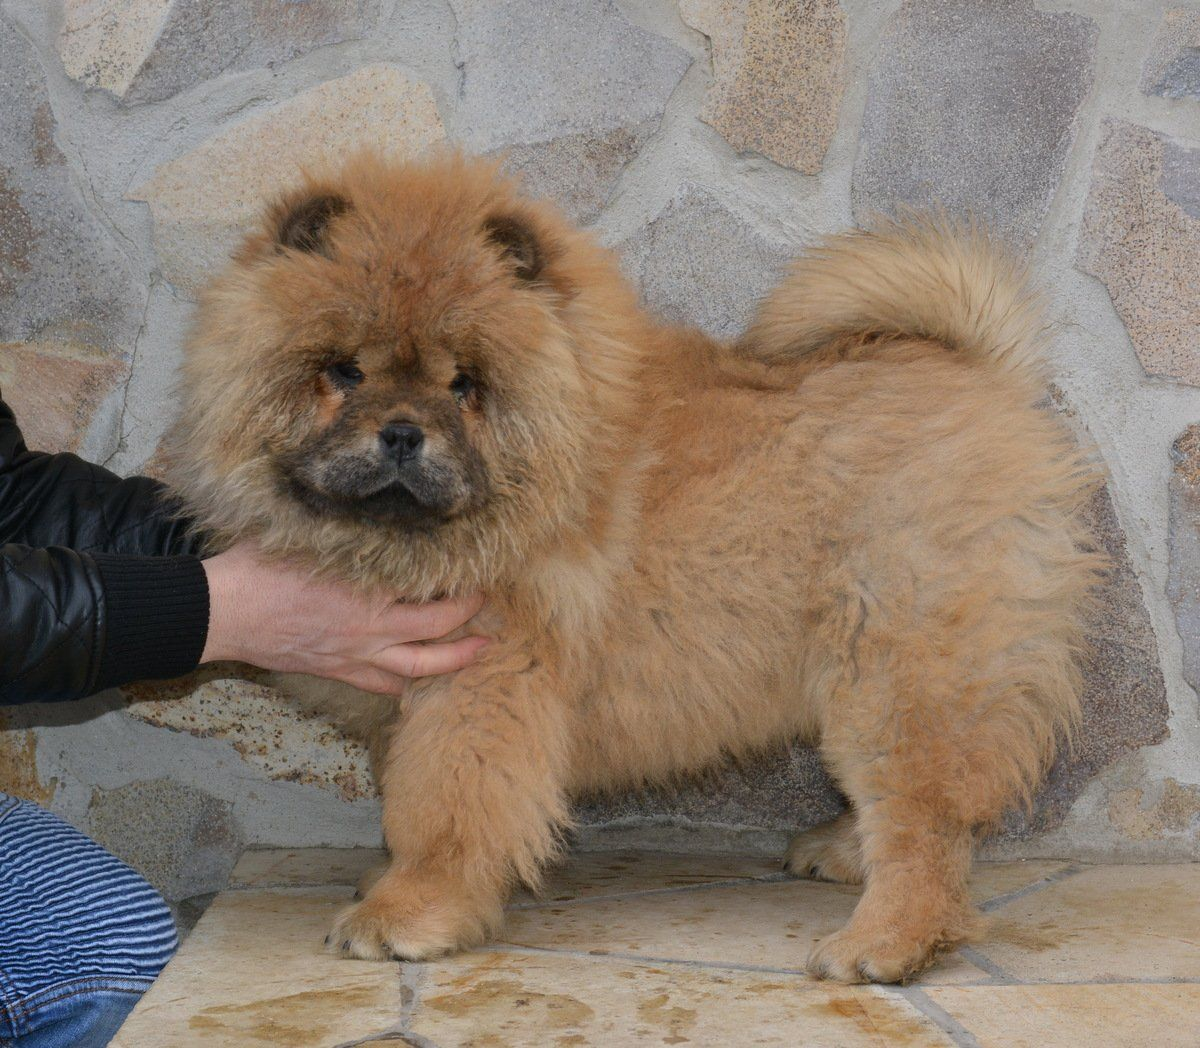 Jasmin Queen Chow Chow Puppy For Sale Euro Puppy Chow Chow Pure Breed Bear And Lion Type Pets For Sale Dog In 2020 Pure Breed Dogs Chow Puppies For Sale Pets